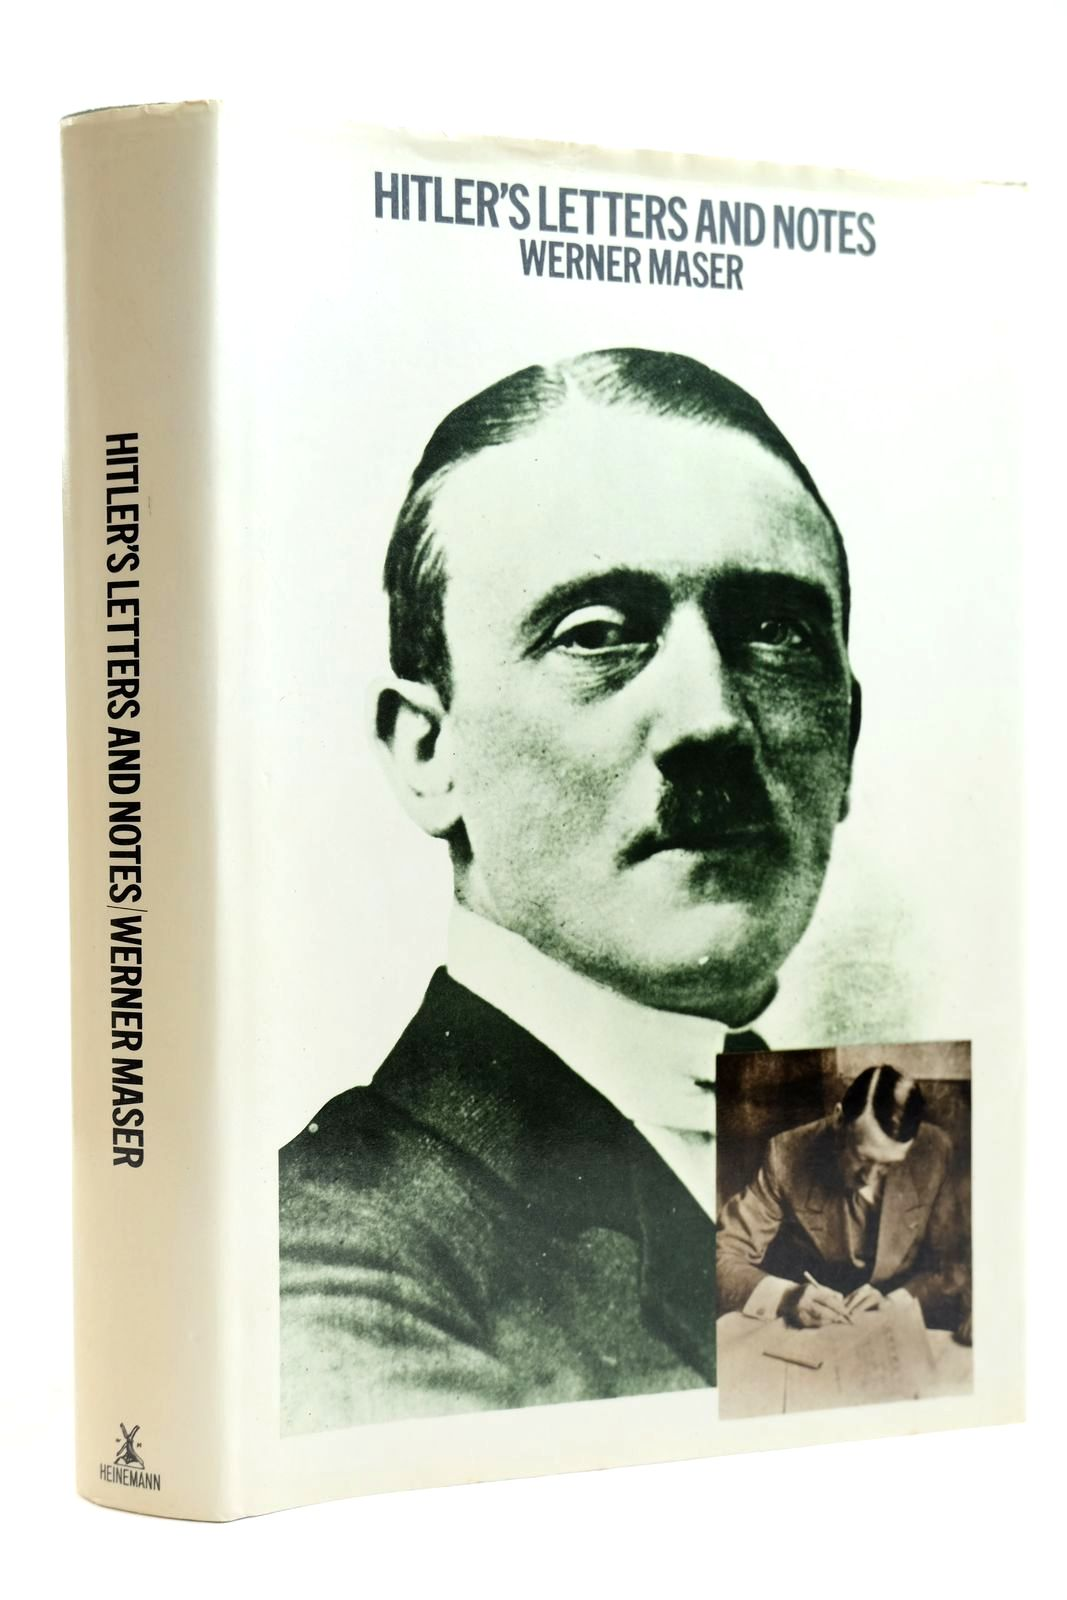 Photo of HITLER'S LETTERS AND NOTES written by Maser, Werner published by Heinemann (STOCK CODE: 2131919)  for sale by Stella & Rose's Books